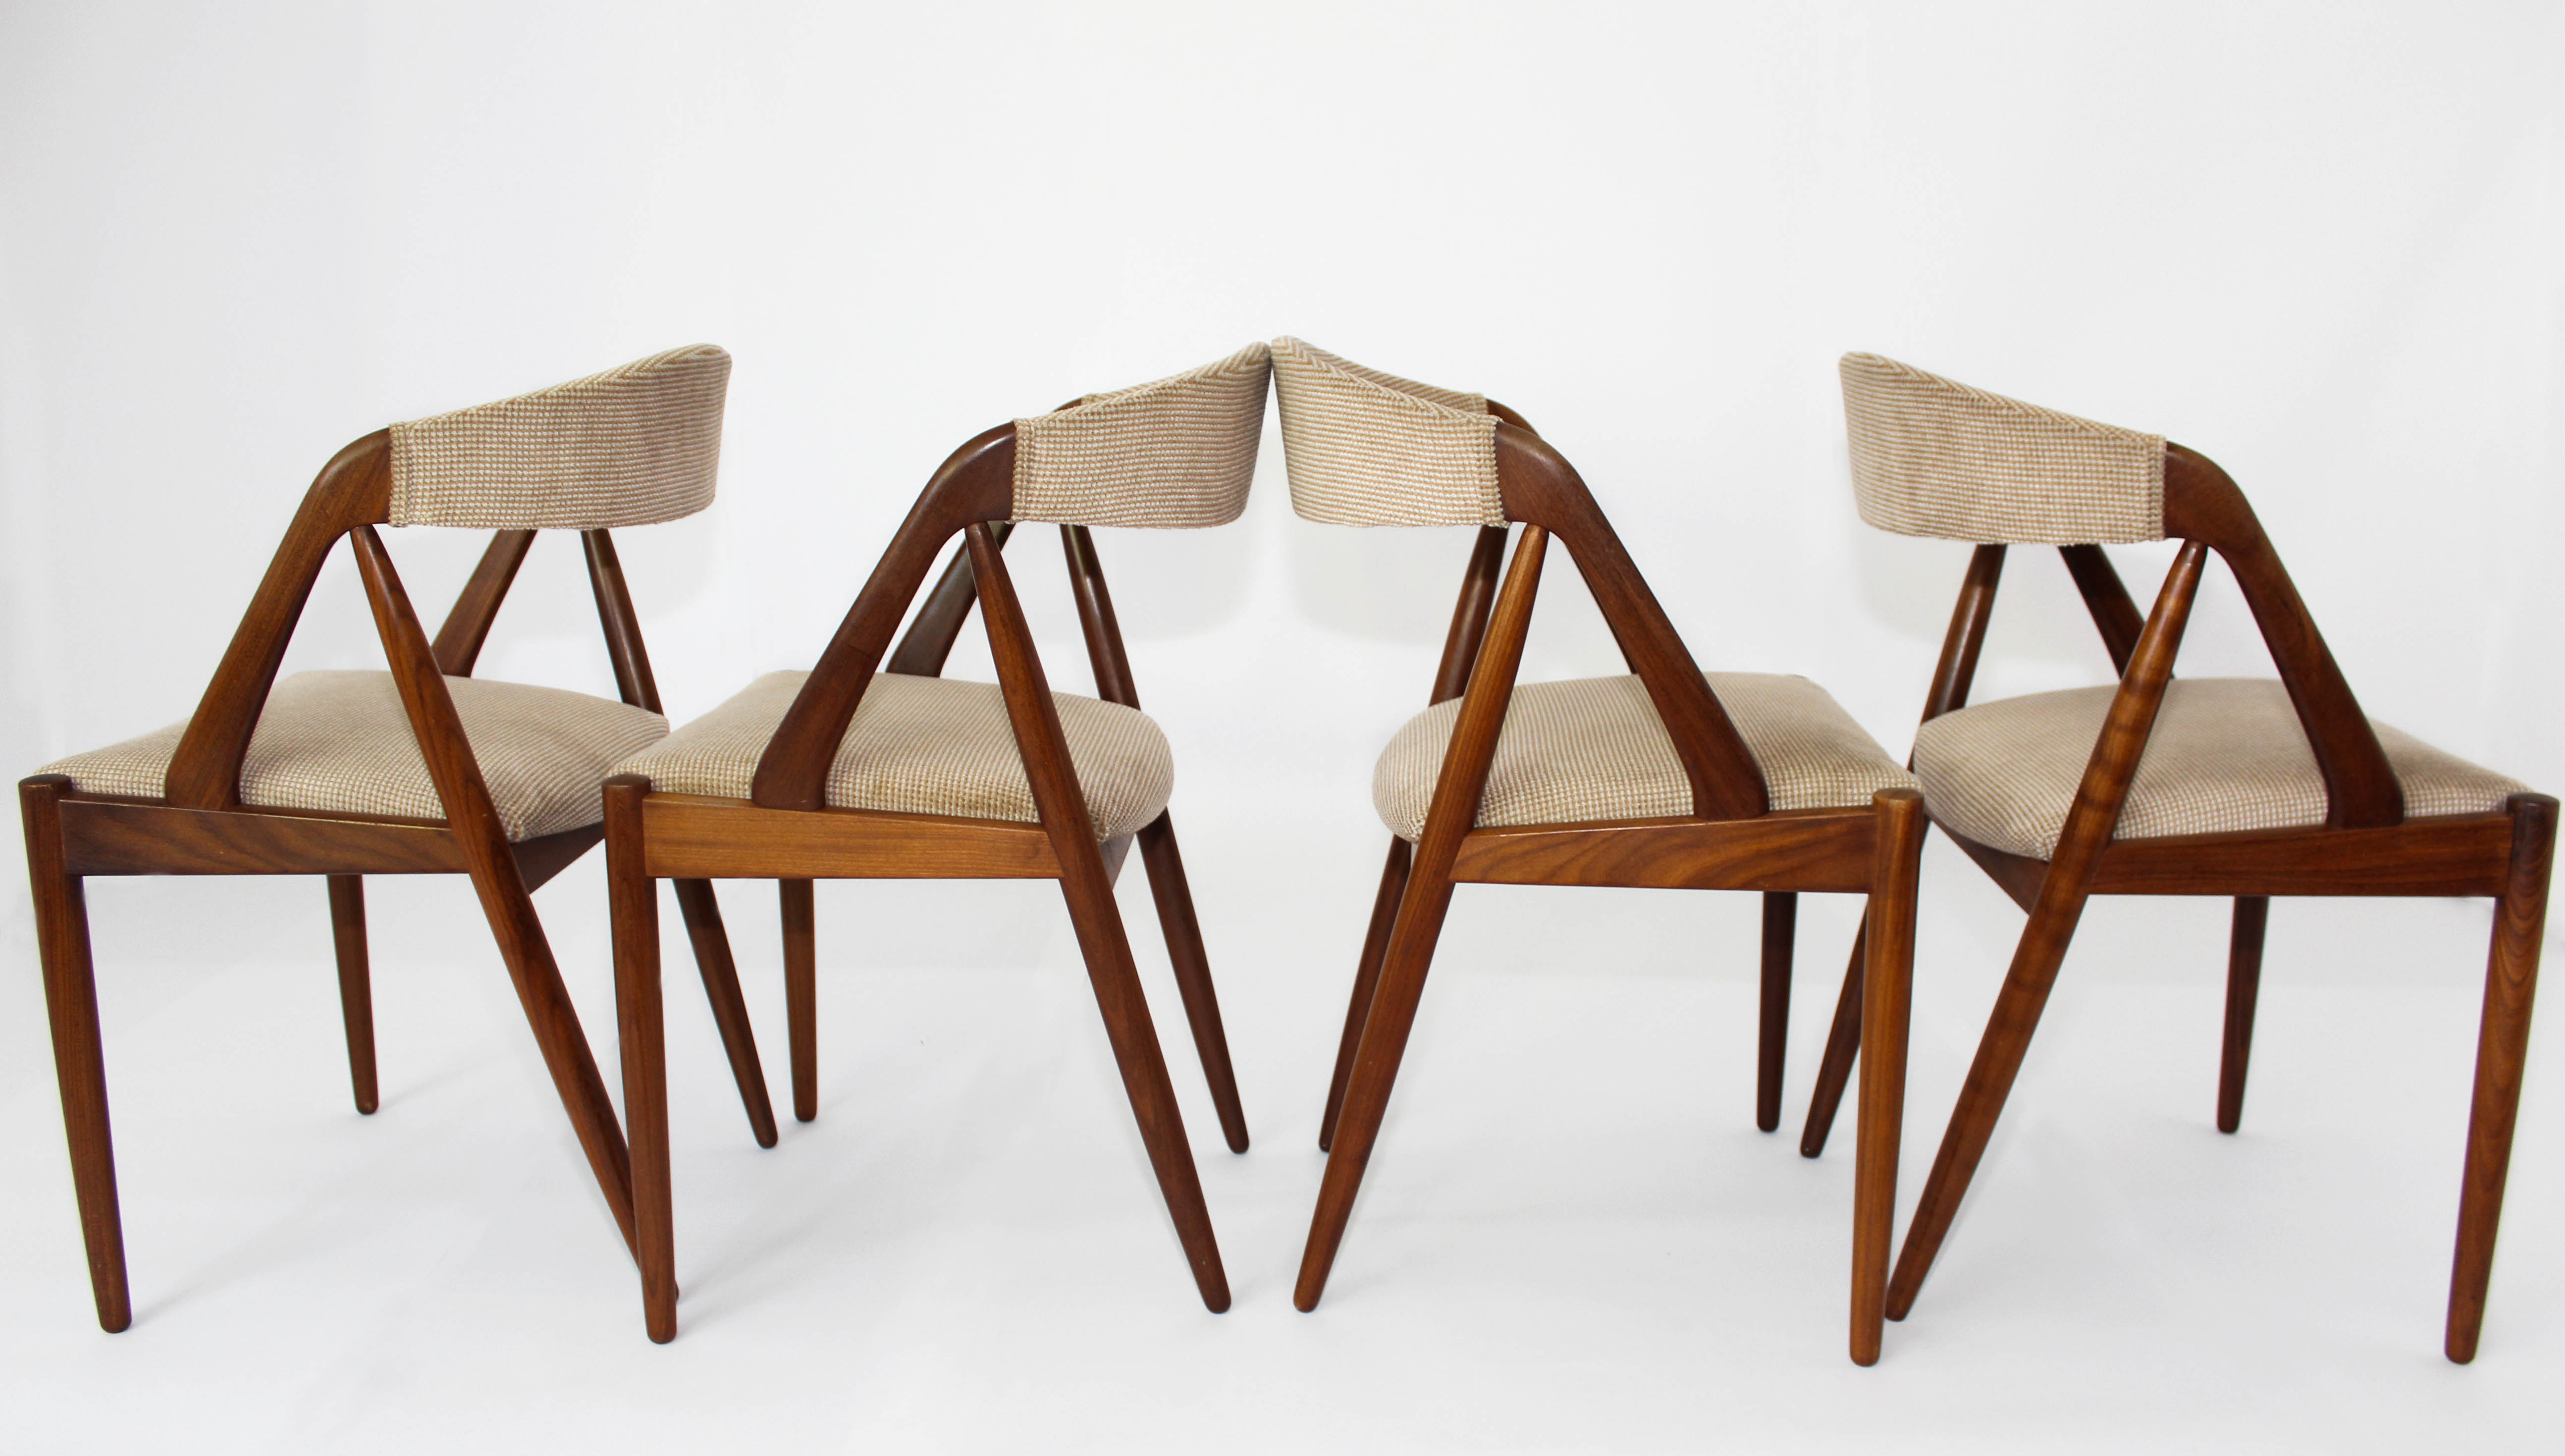 four chair dining set home office of 4 iconic kai kristiansen #42 rosewood teak chairs | mansion decor